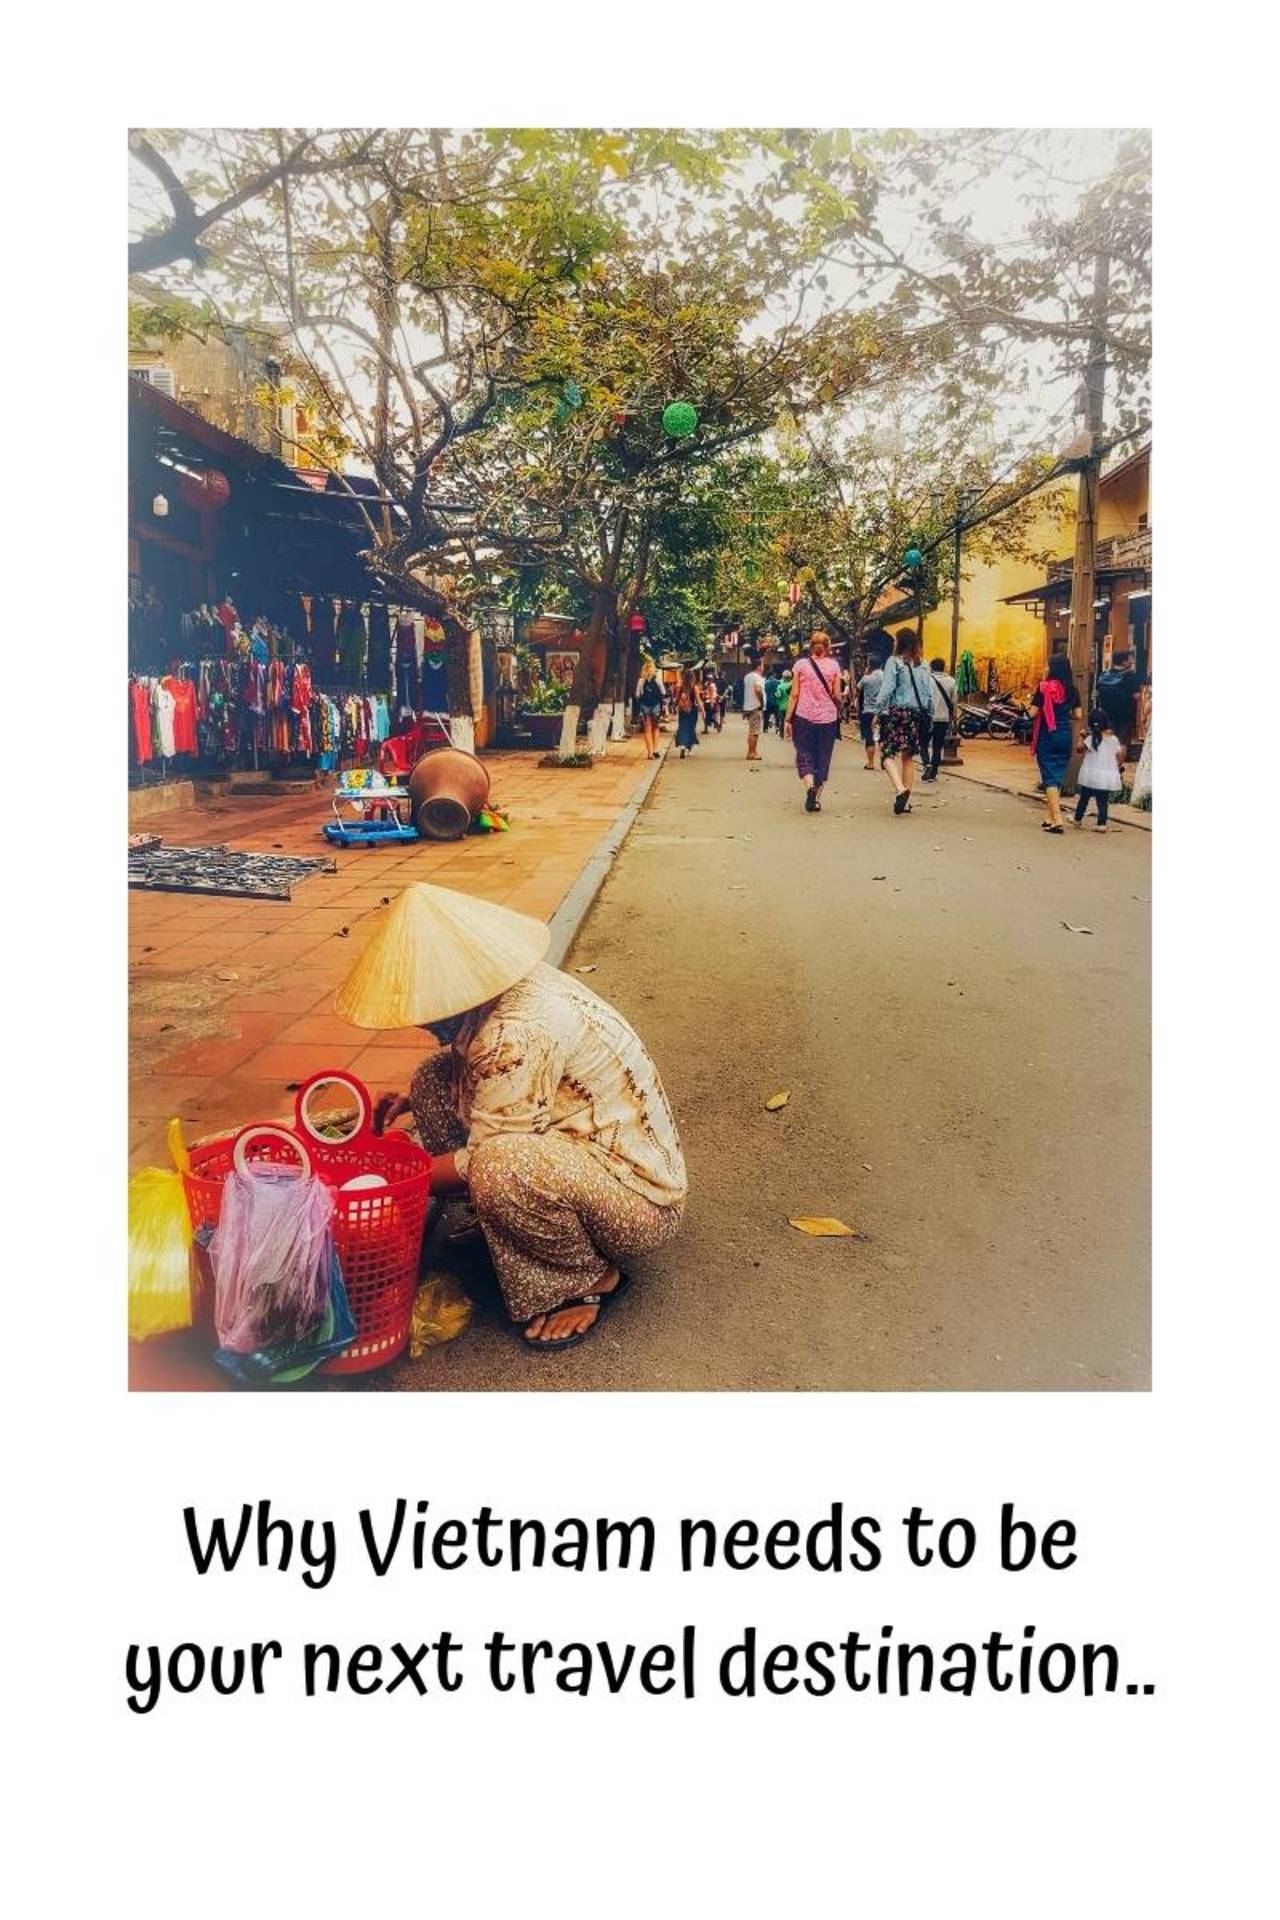 Why Vietnam needs to be your next travel destination. image